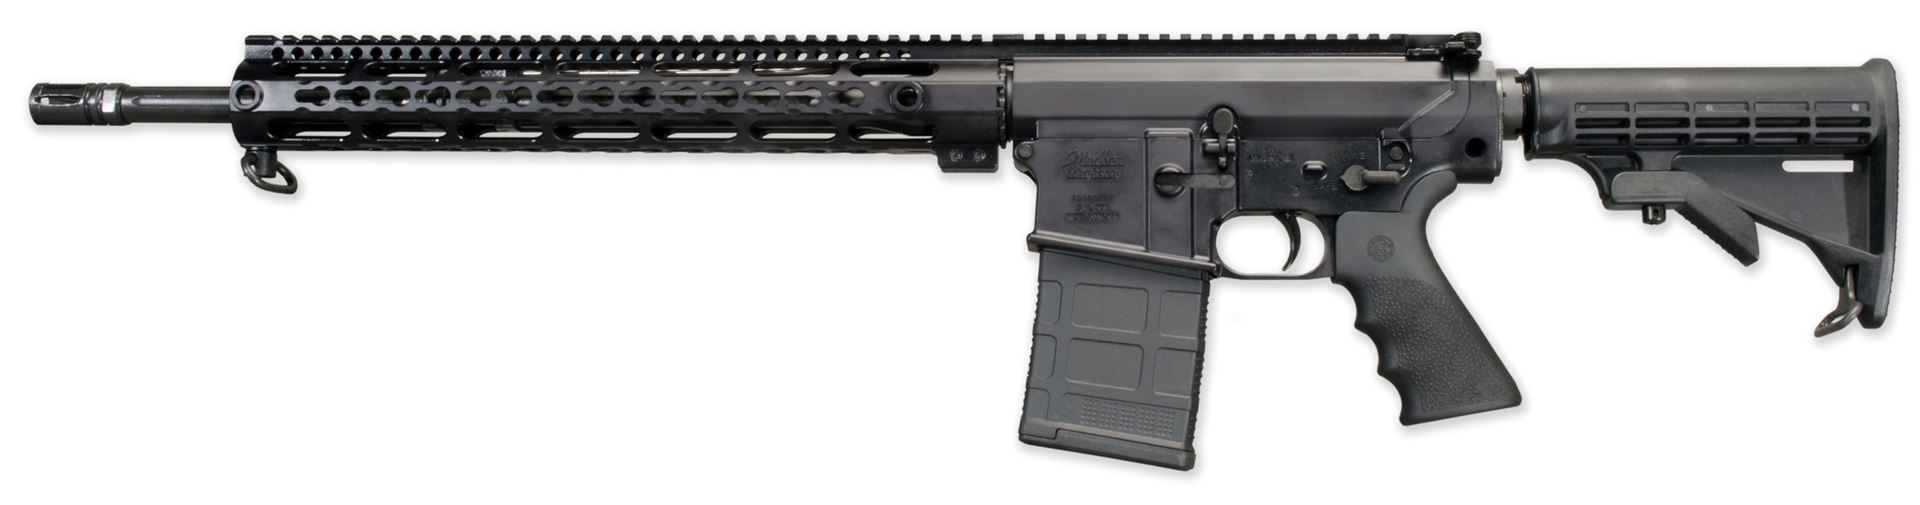 Windham Weaponry 308 Rifle